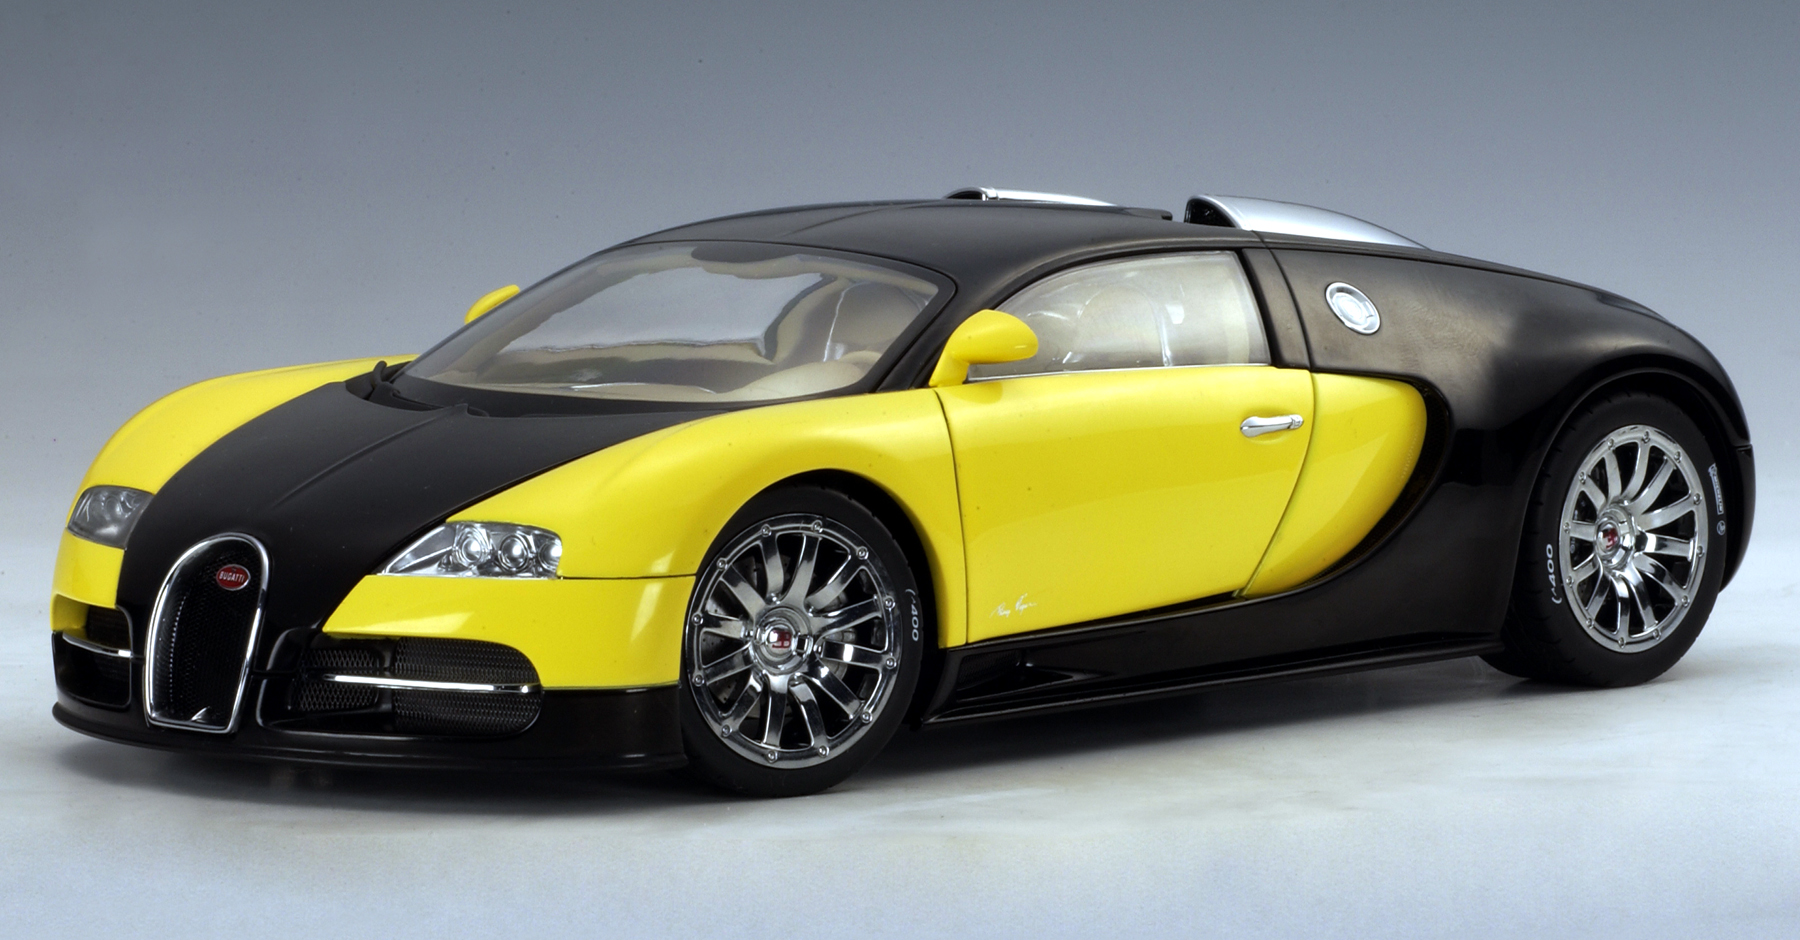 autoart bugatti eb 16 4 veyron show car black yellow 70904 in 1 18 scale mdiecast. Black Bedroom Furniture Sets. Home Design Ideas